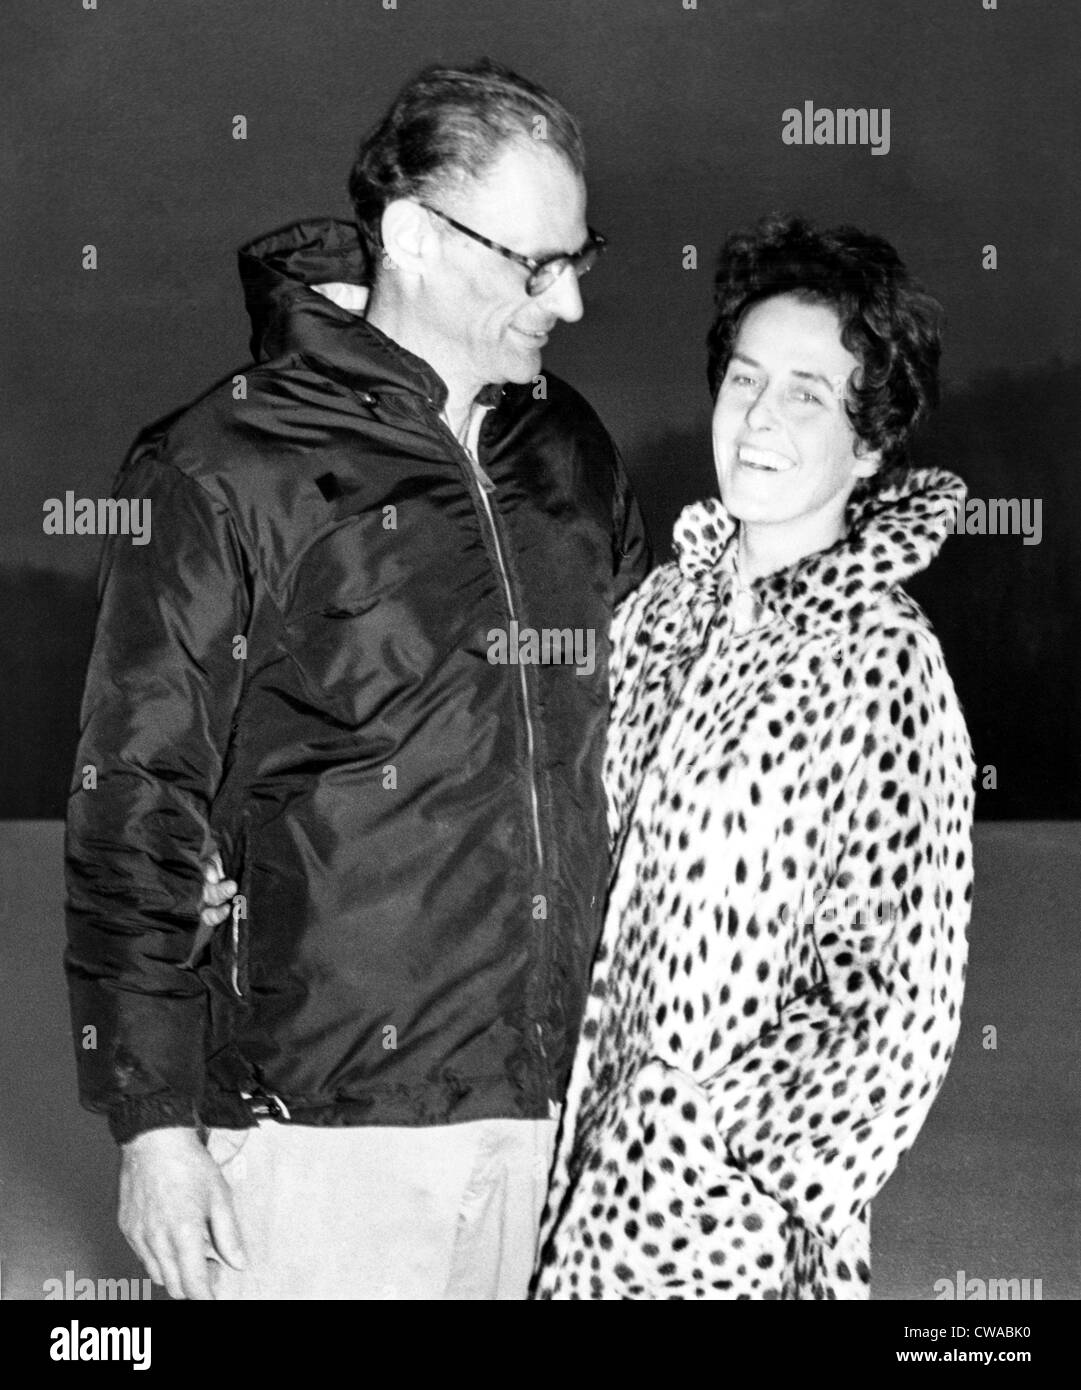 Arthur Miller and his new wife photographer Inge Morath, 1960s. Courtesy: CSU Archives / Everett Collection - Stock Image